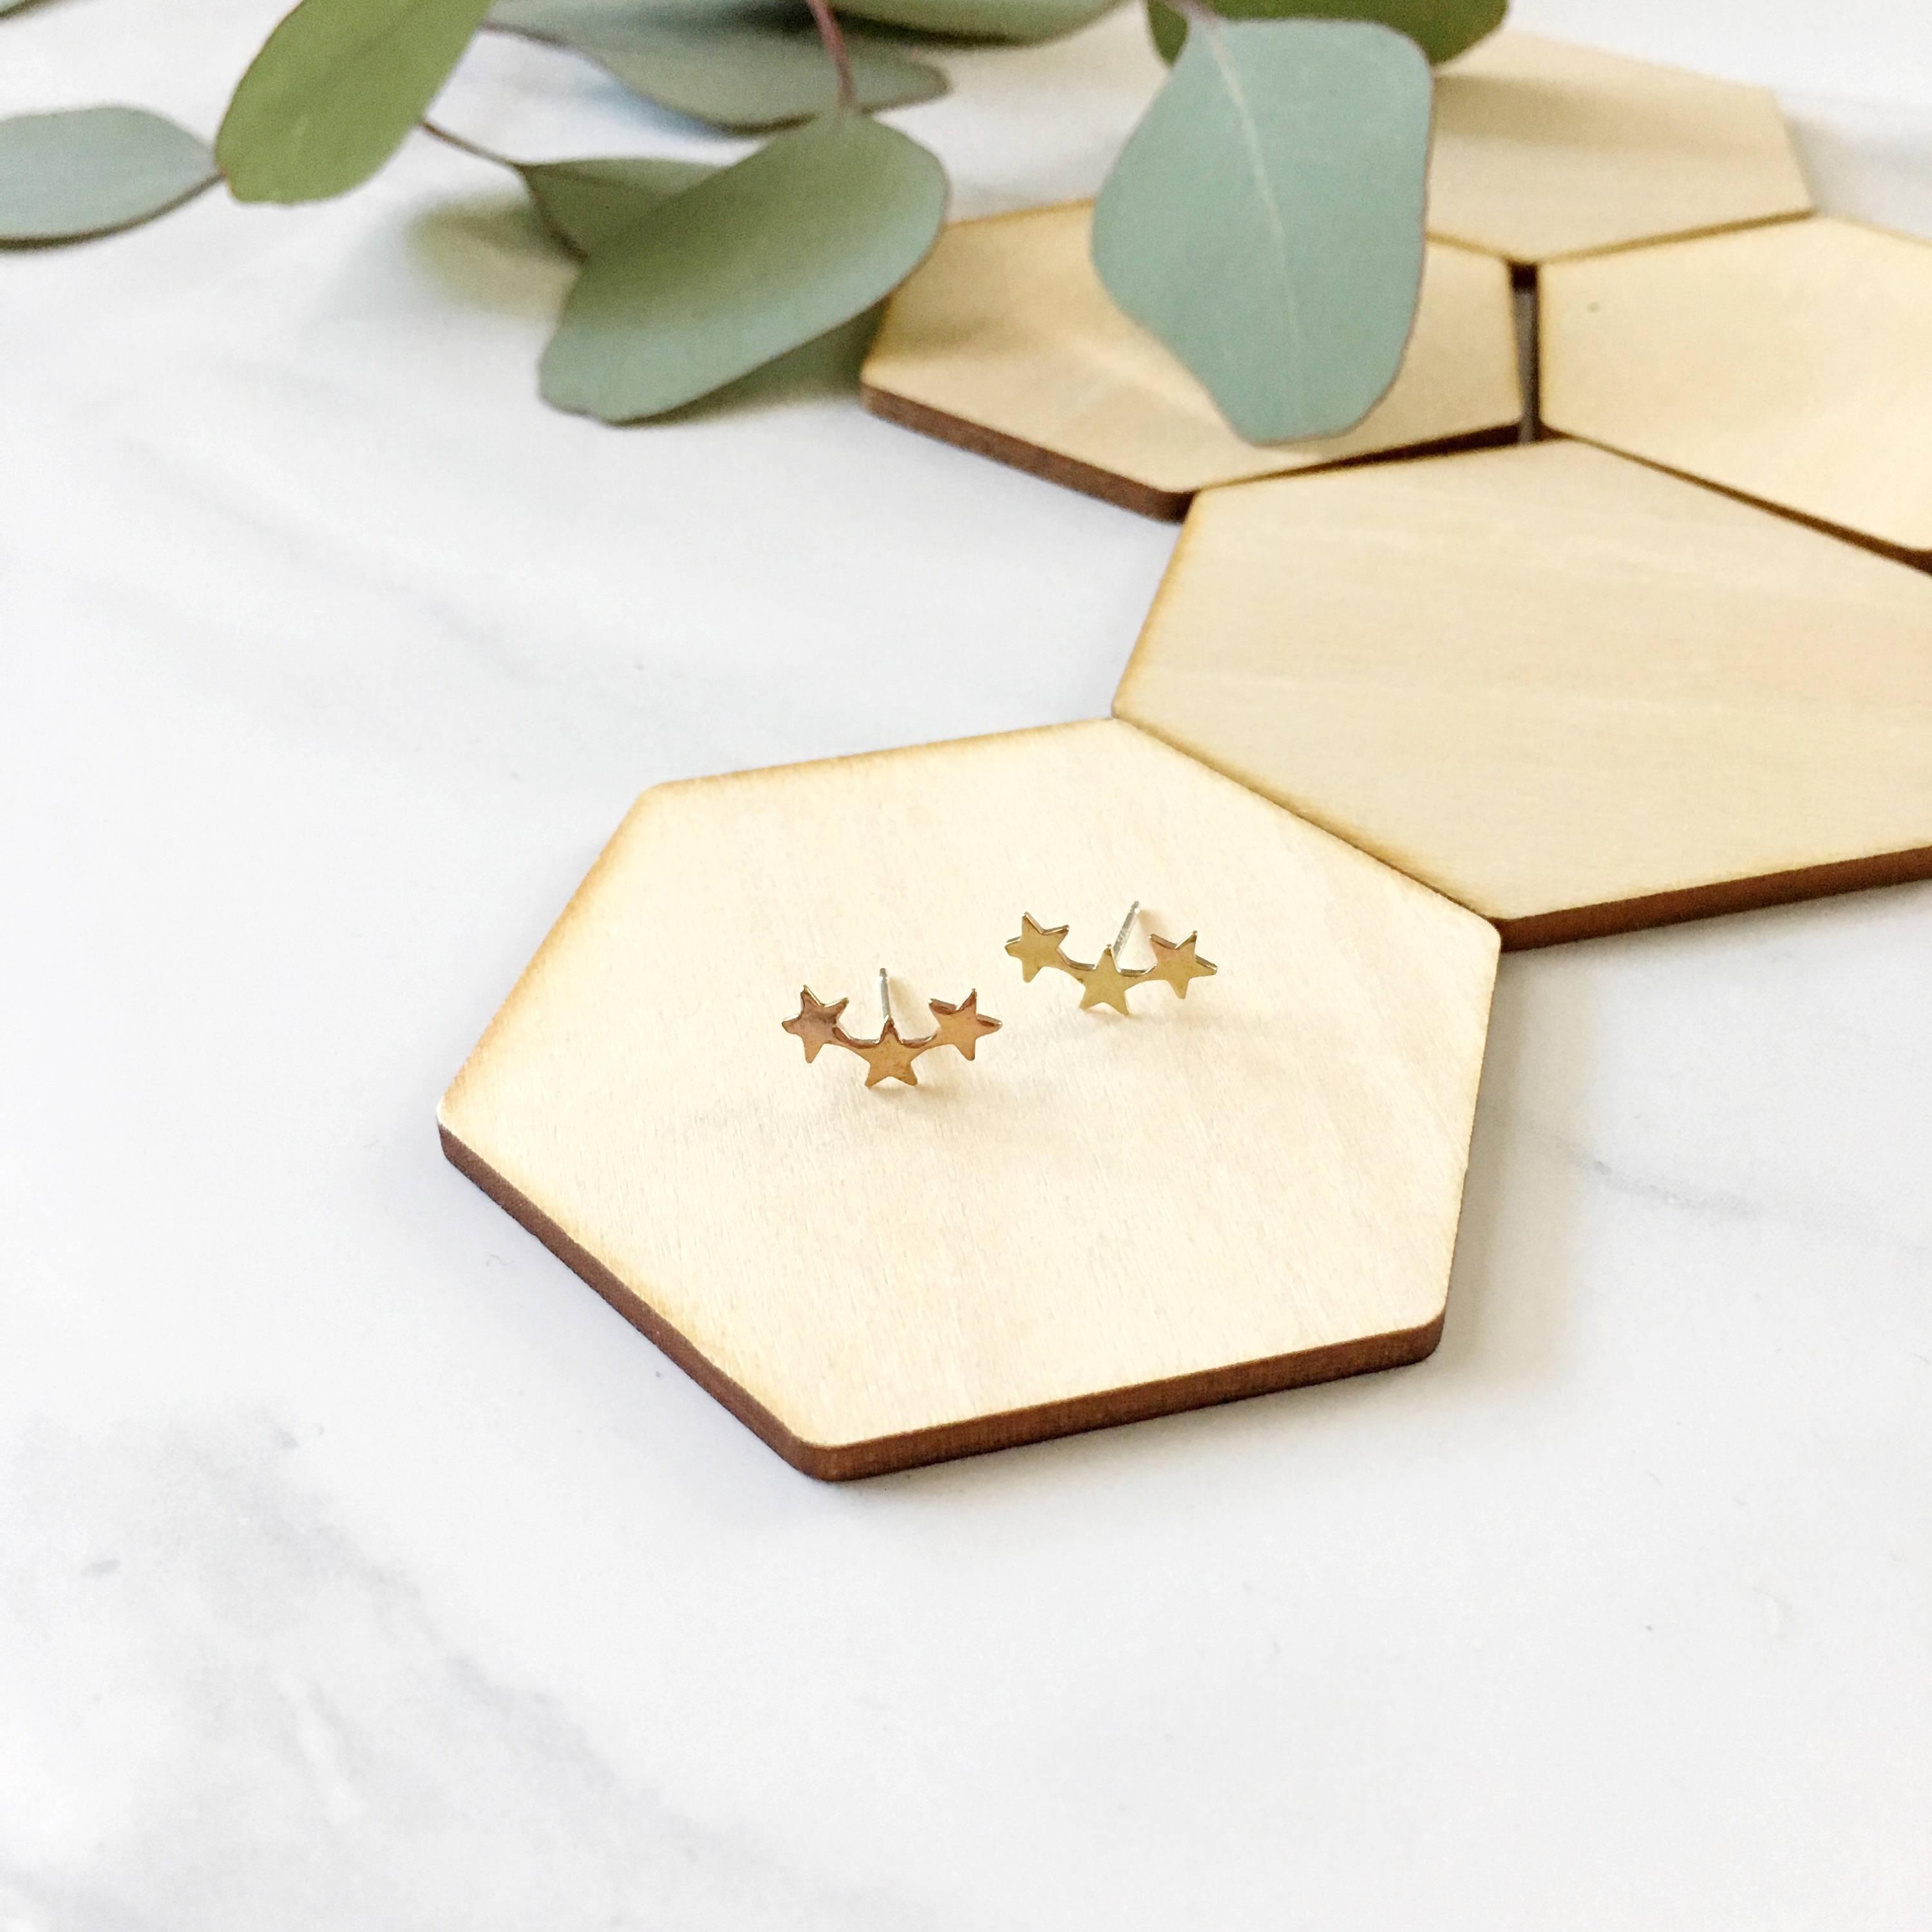 10fcc2413d829 Star Climber Earrings, studs, posts, stars, planets, celestial, sky,  zodiac, jewelry under 20, gift, constellation, astrology, gold